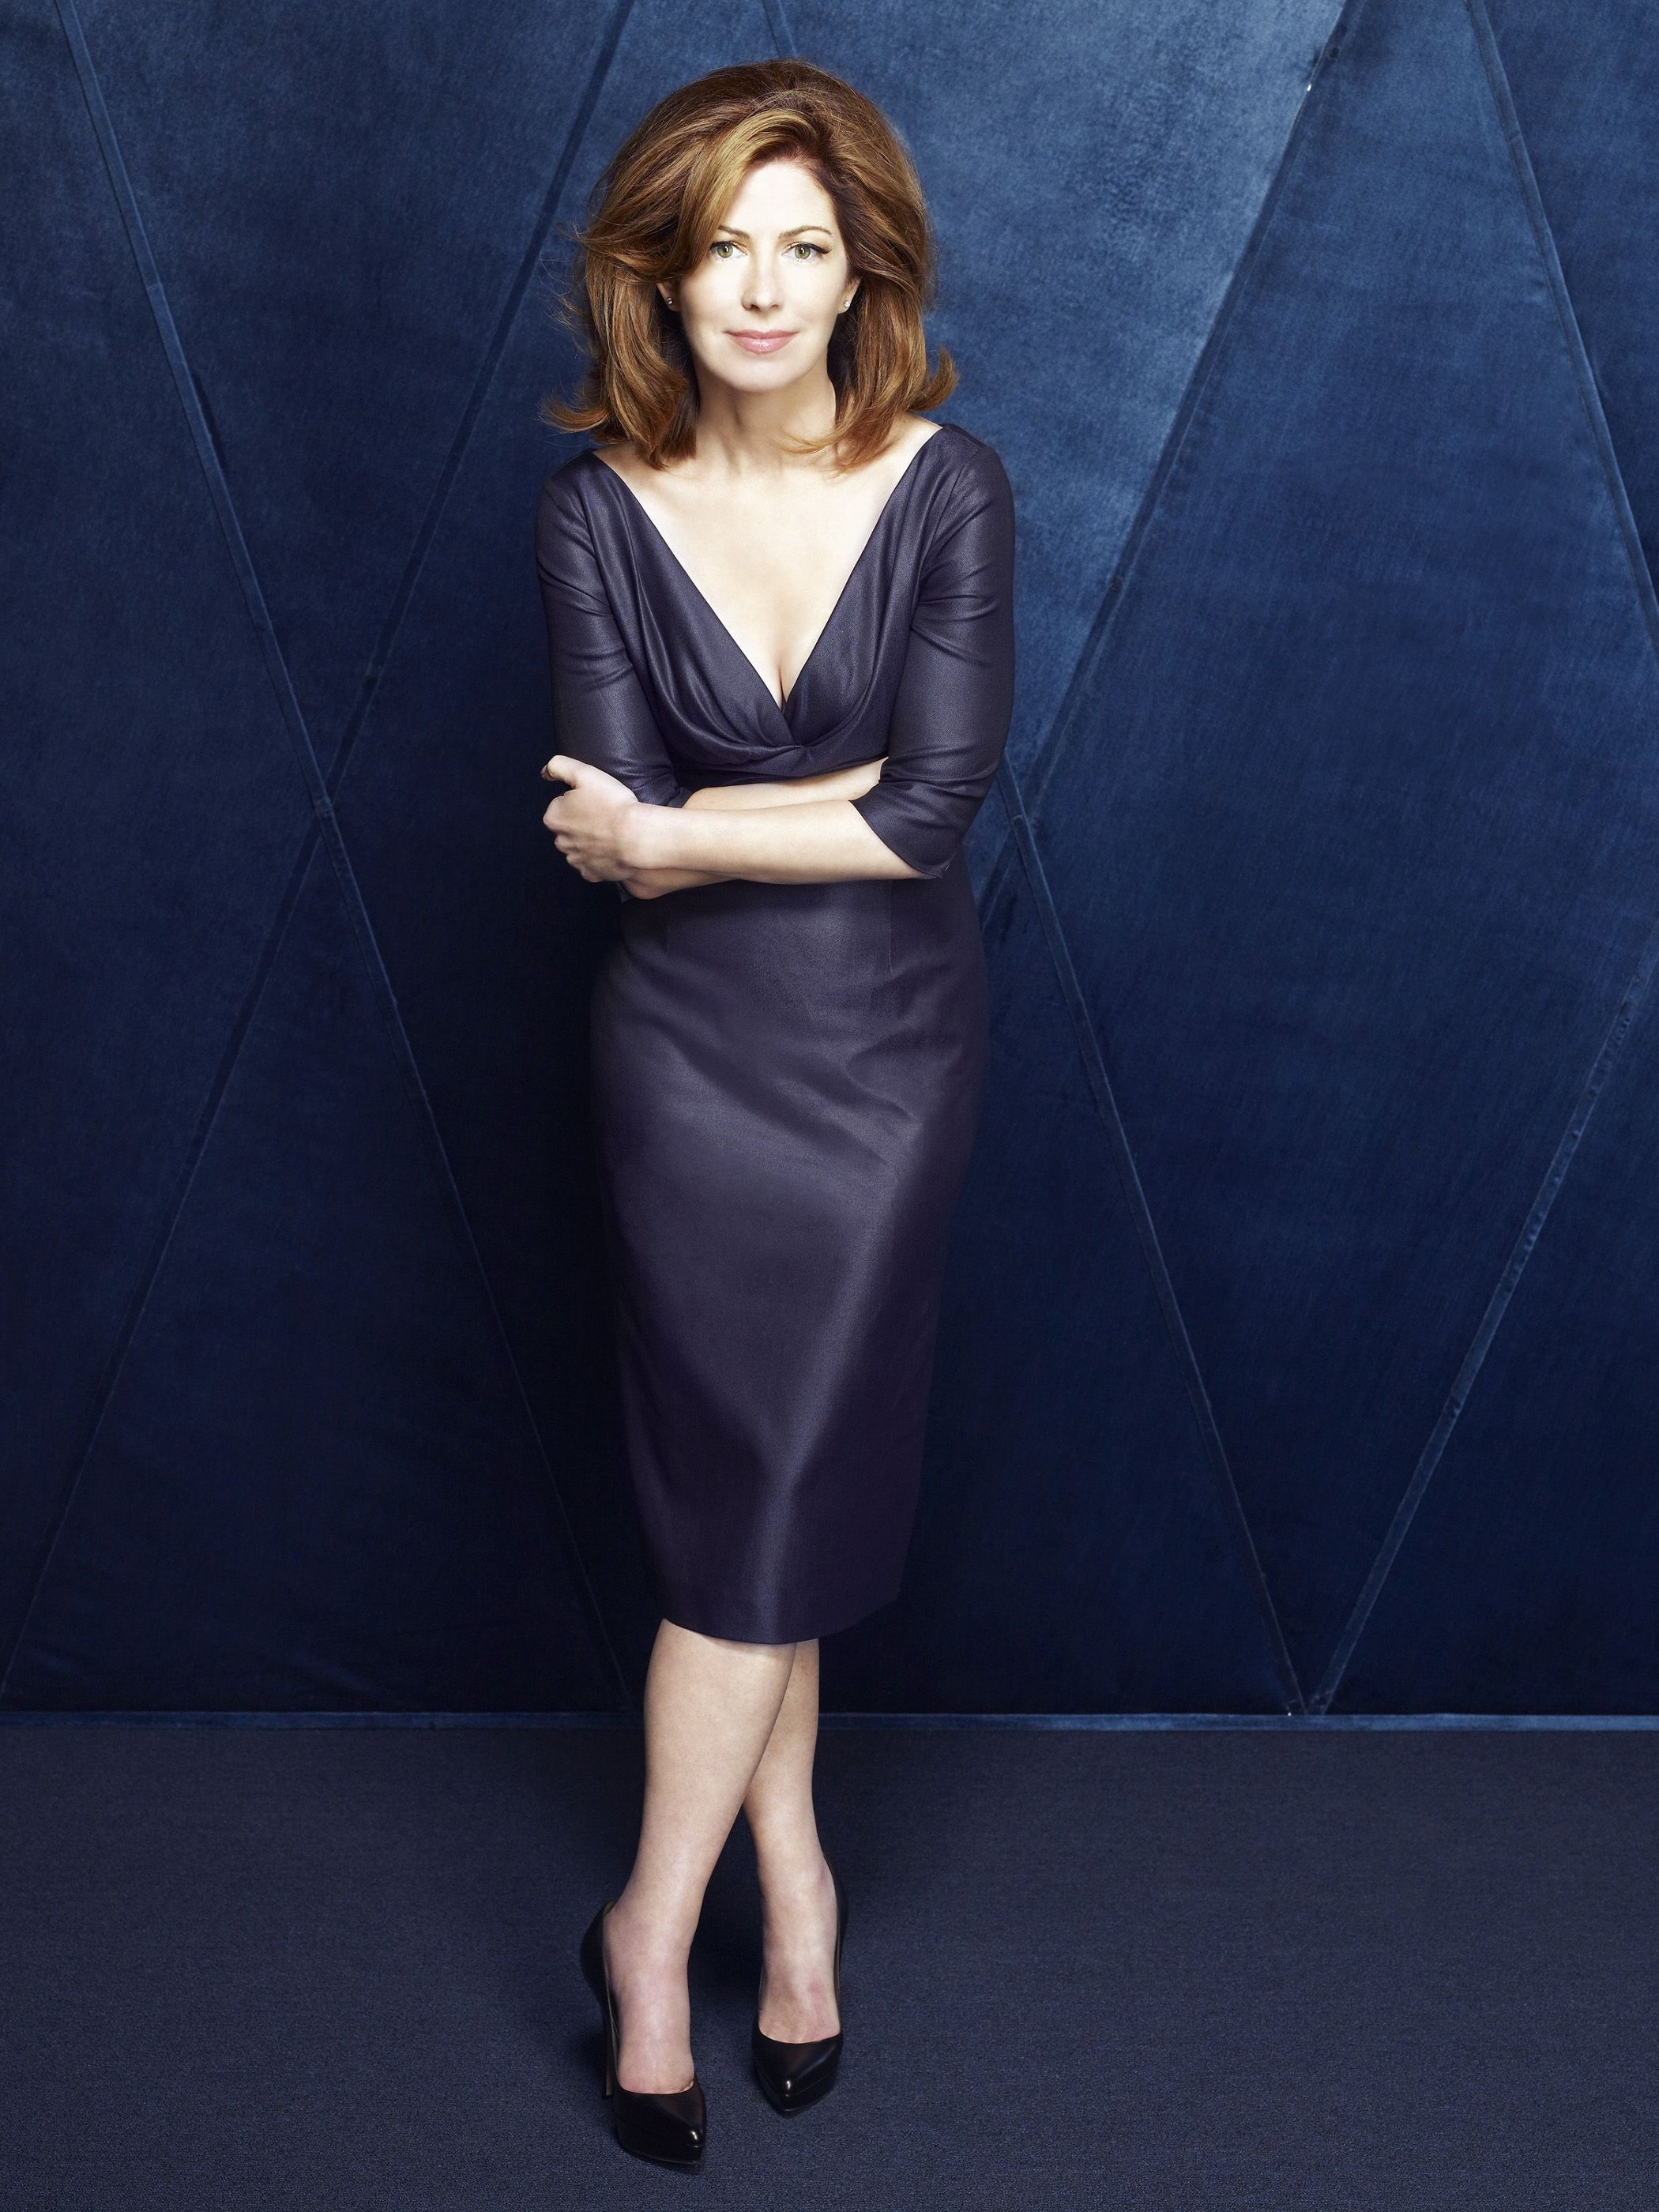 Dana Delany too hot picture